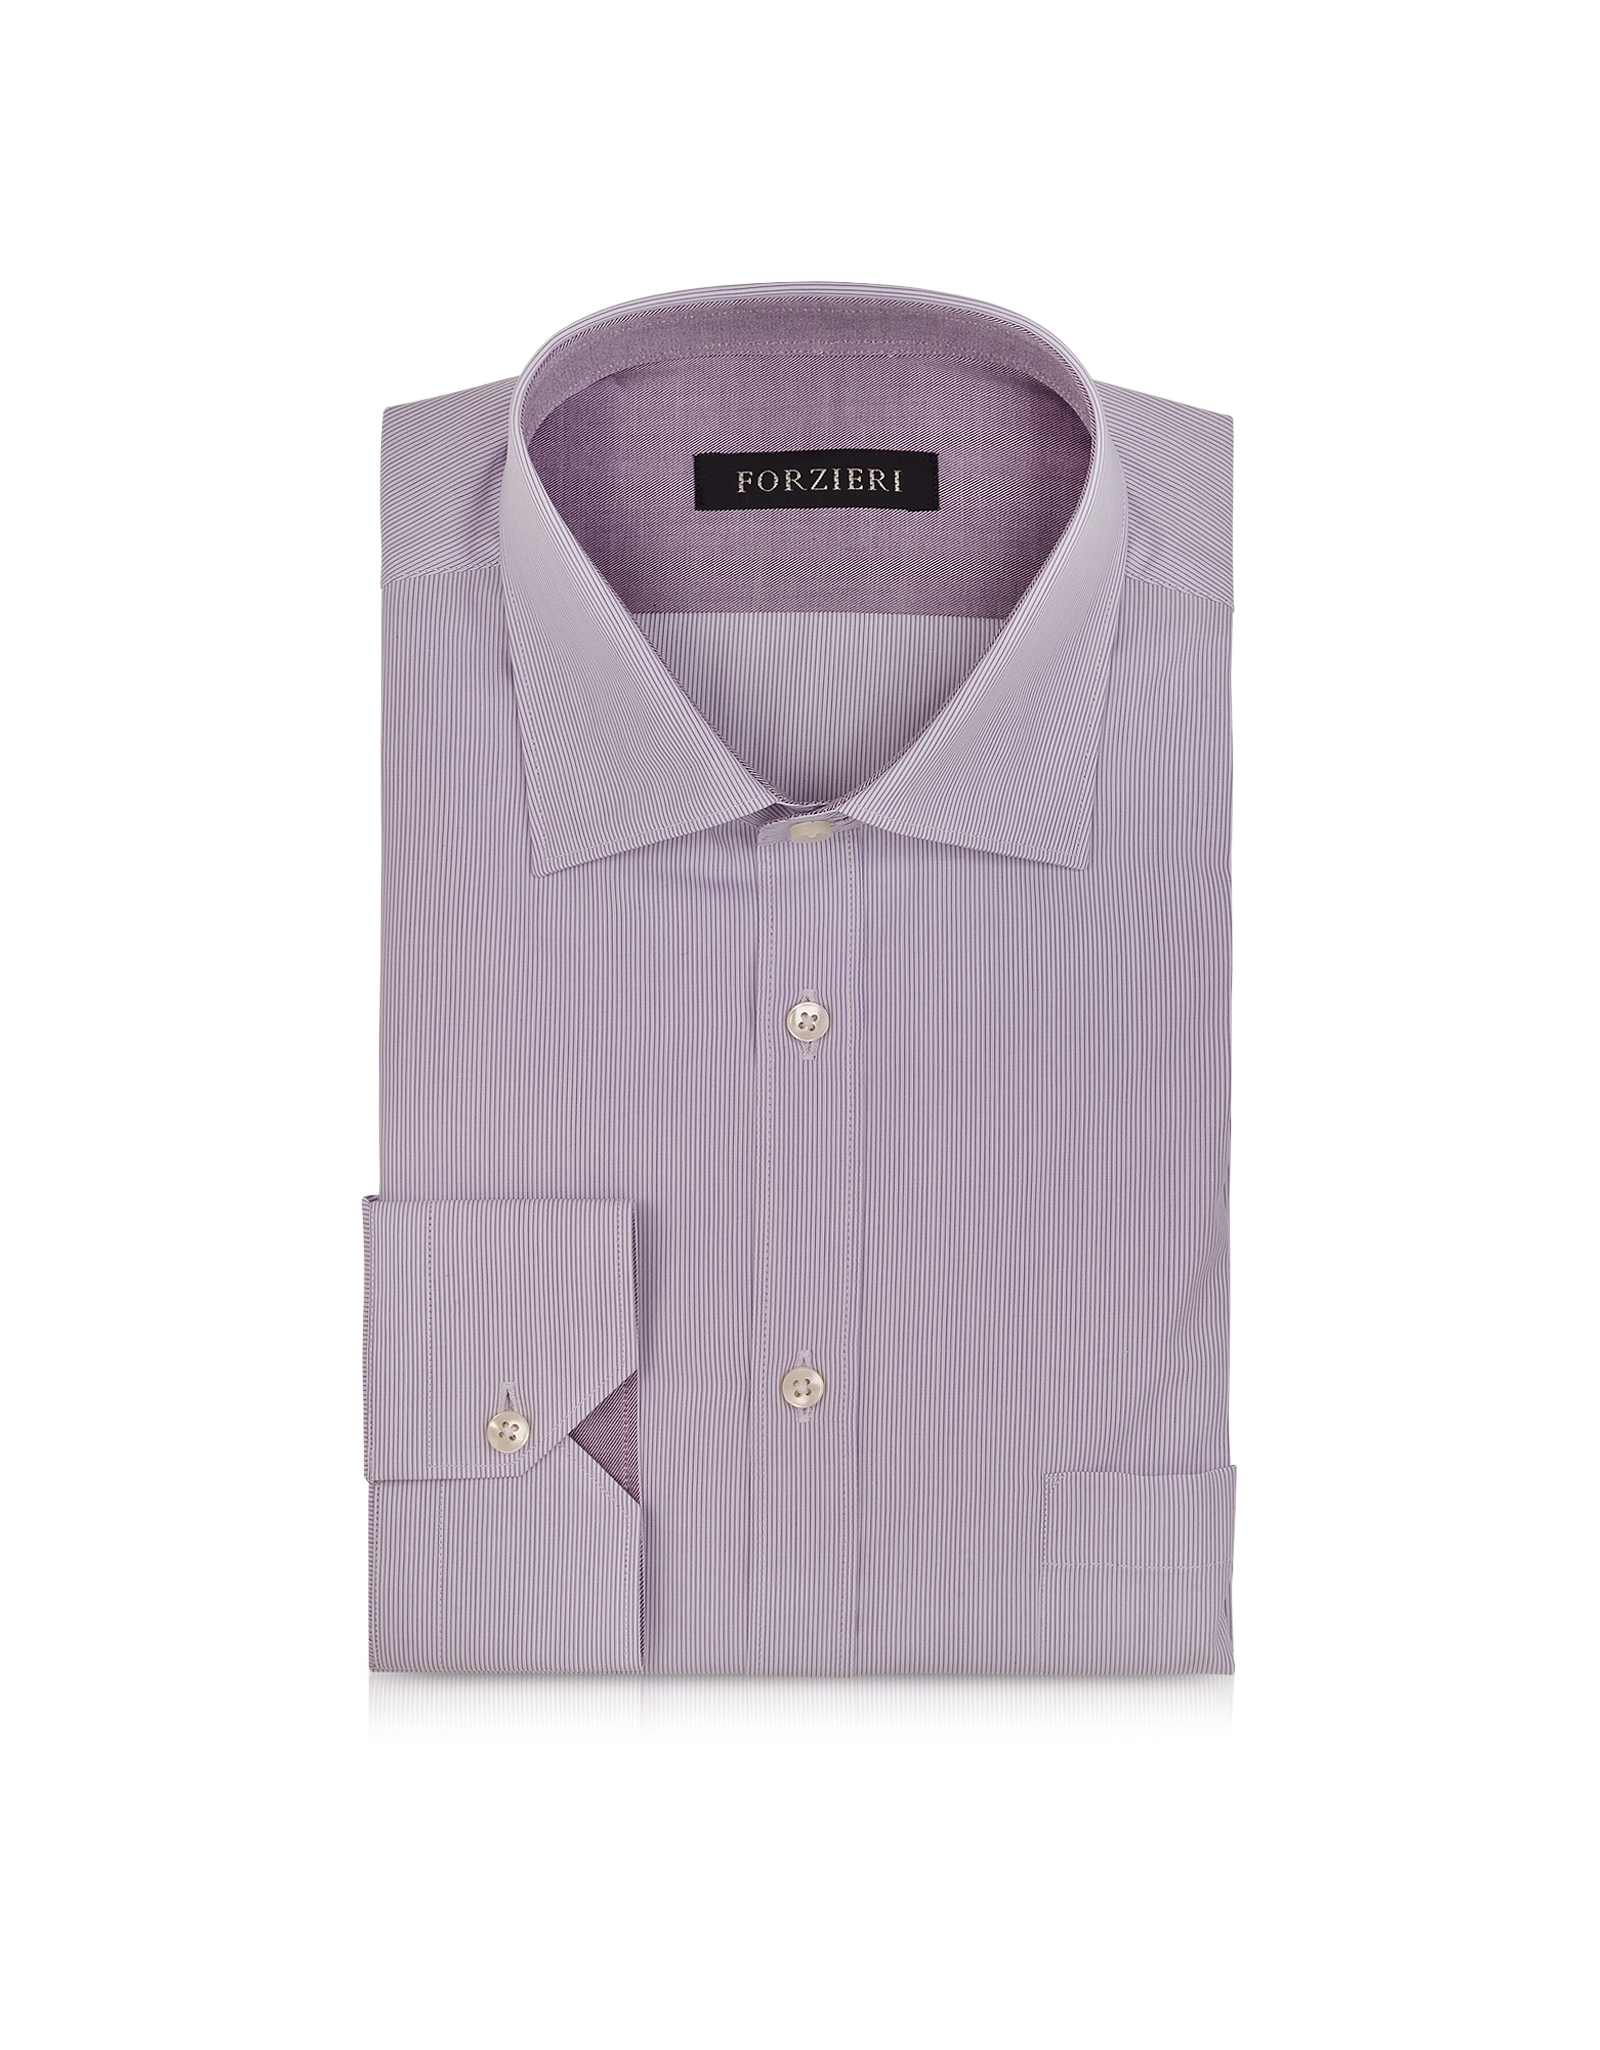 Lyst forzieri light purple striped cotton shirt in Light purple dress shirt men